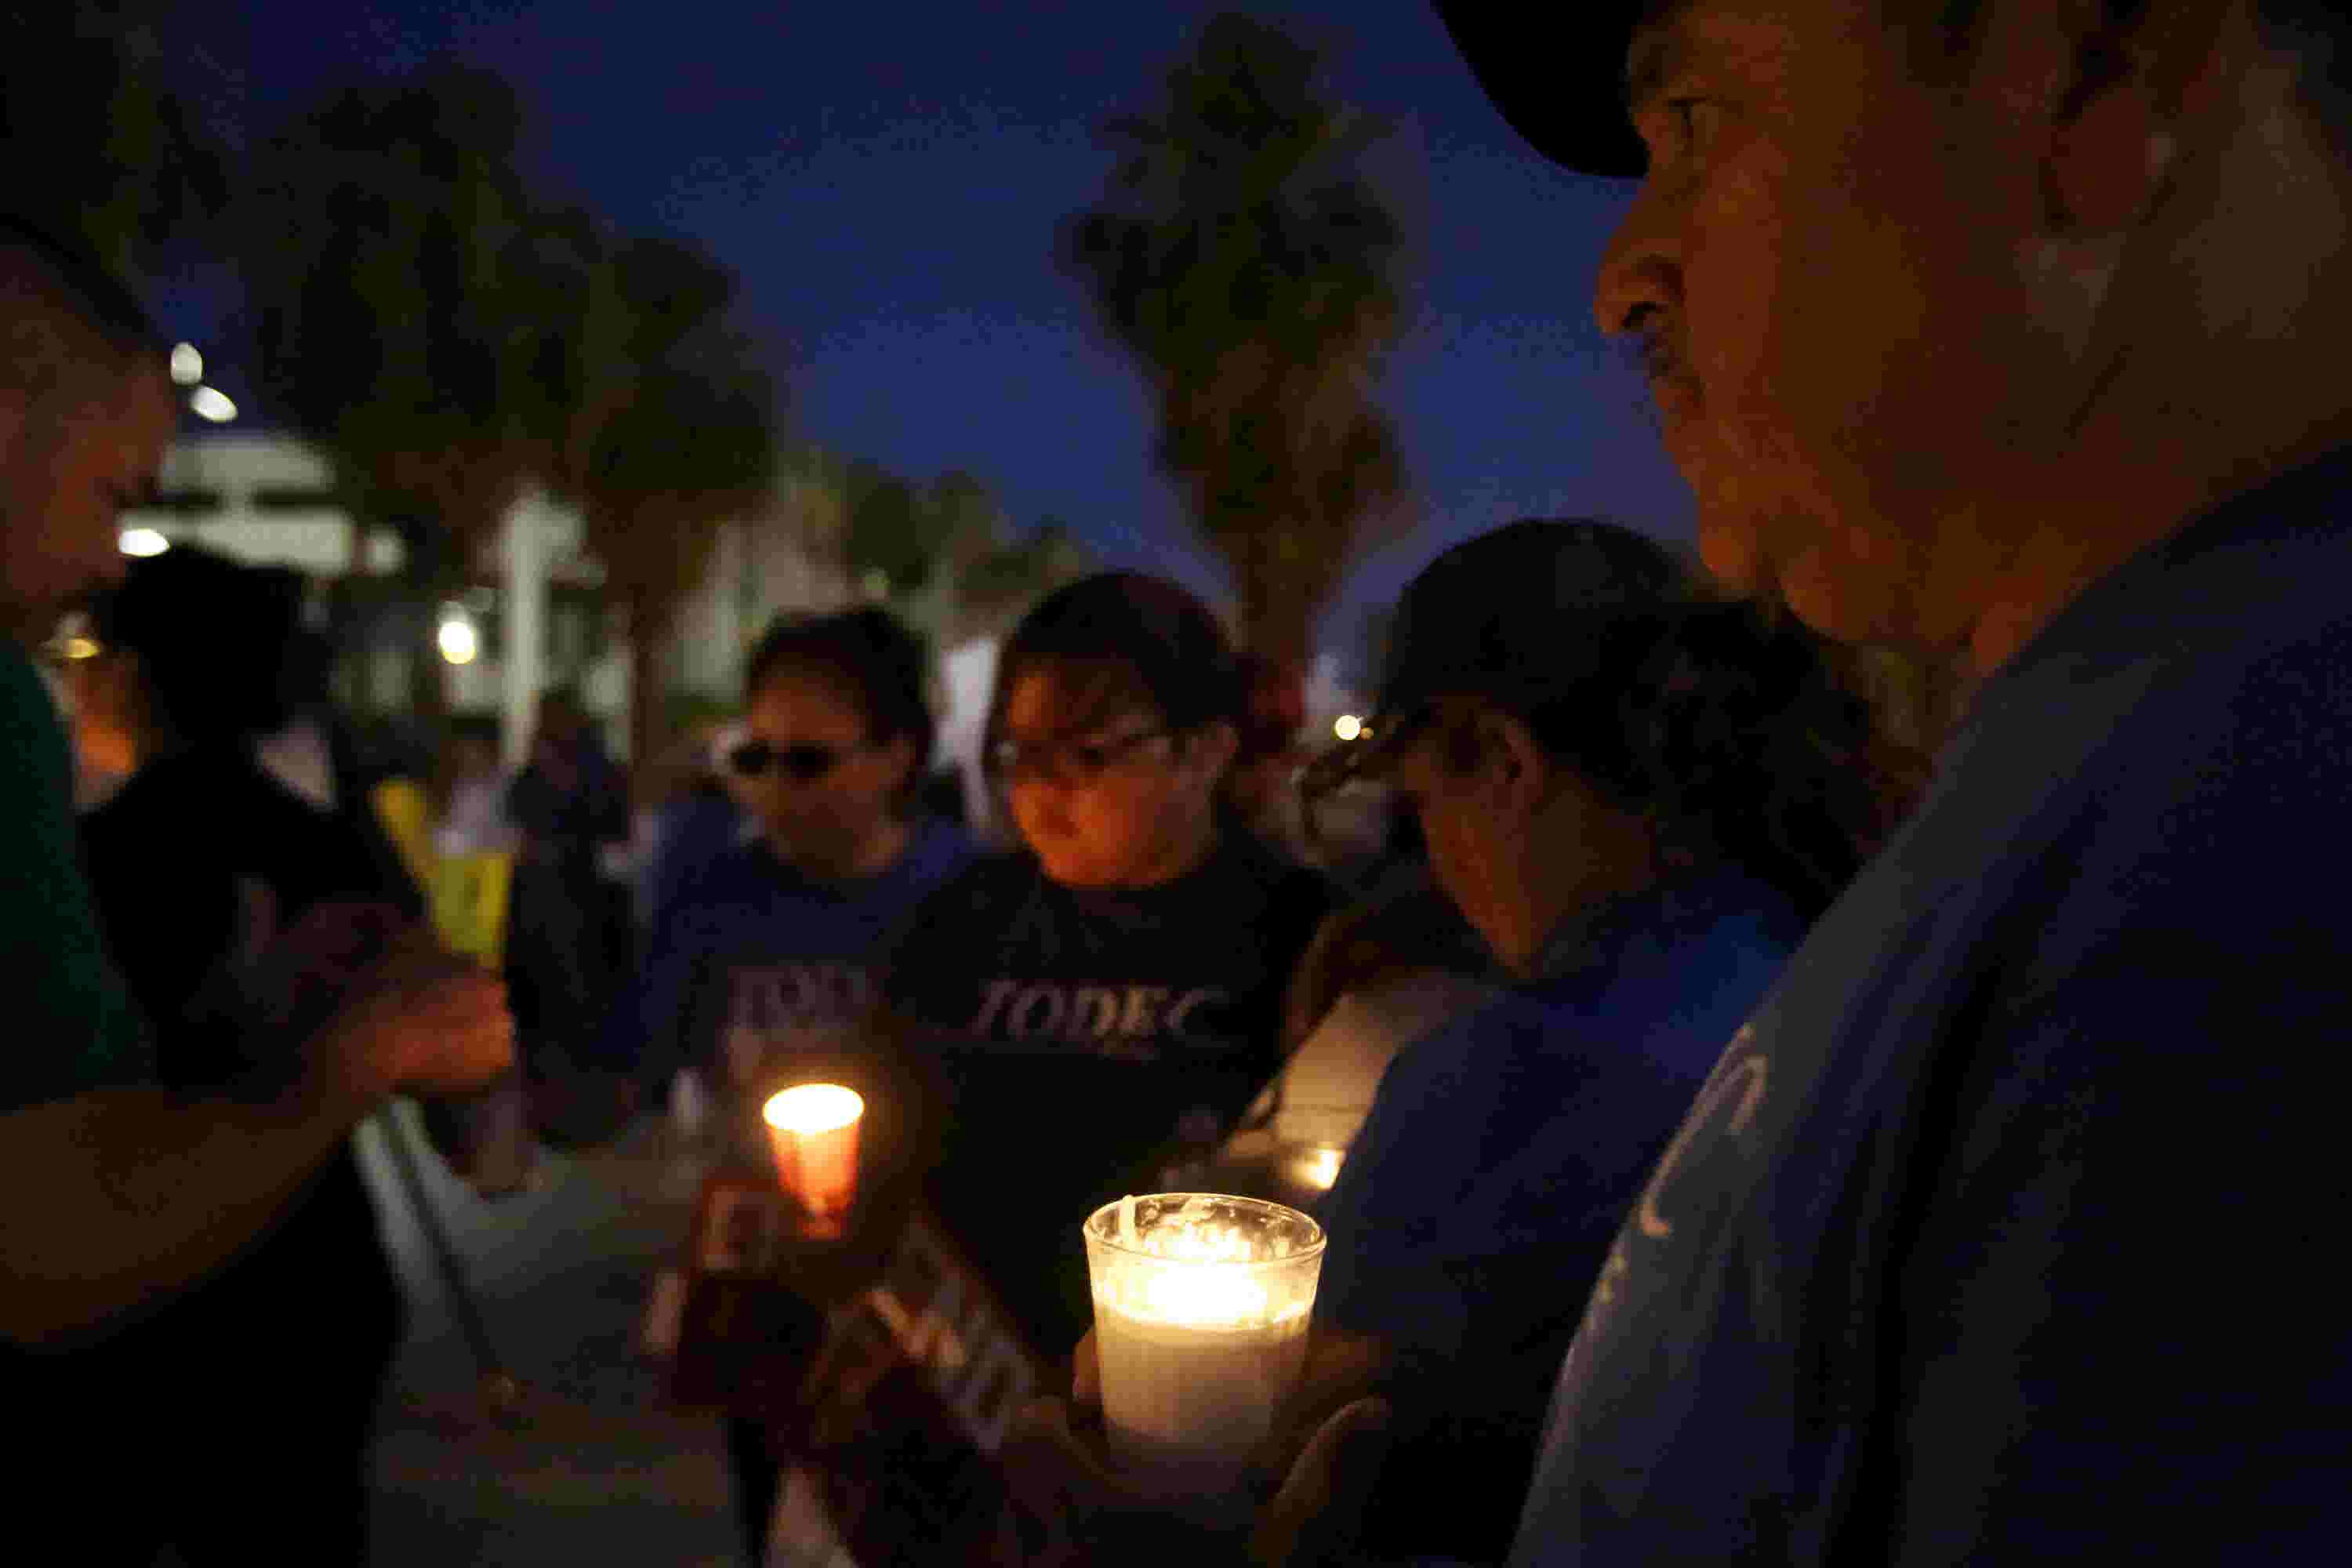 'We can't let fear take over,' Coachella Valley immigrant community says after mass shooting